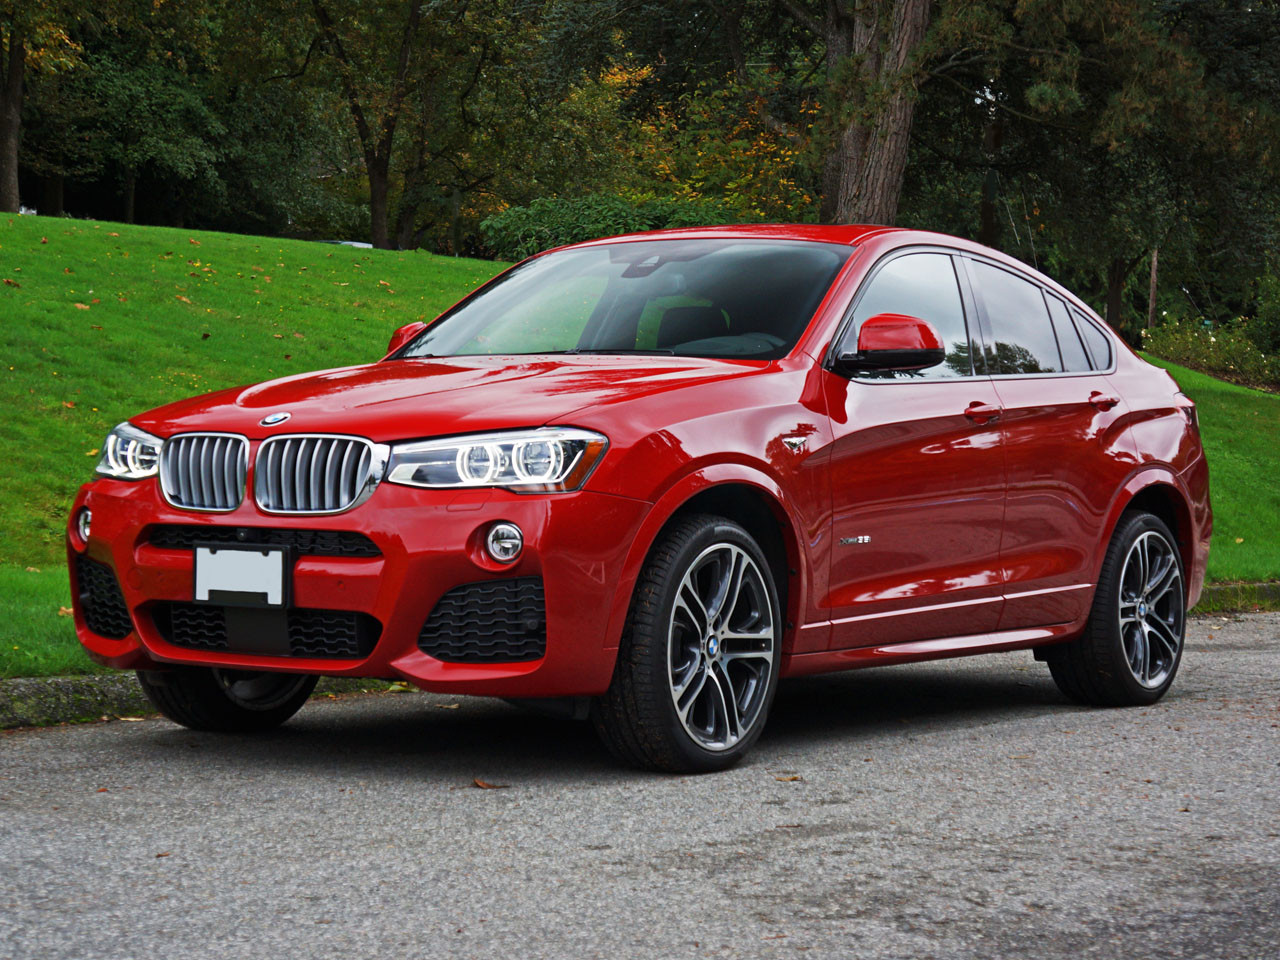 2015 bmw x4 xdrive35i road test review carcostcanada. Black Bedroom Furniture Sets. Home Design Ideas